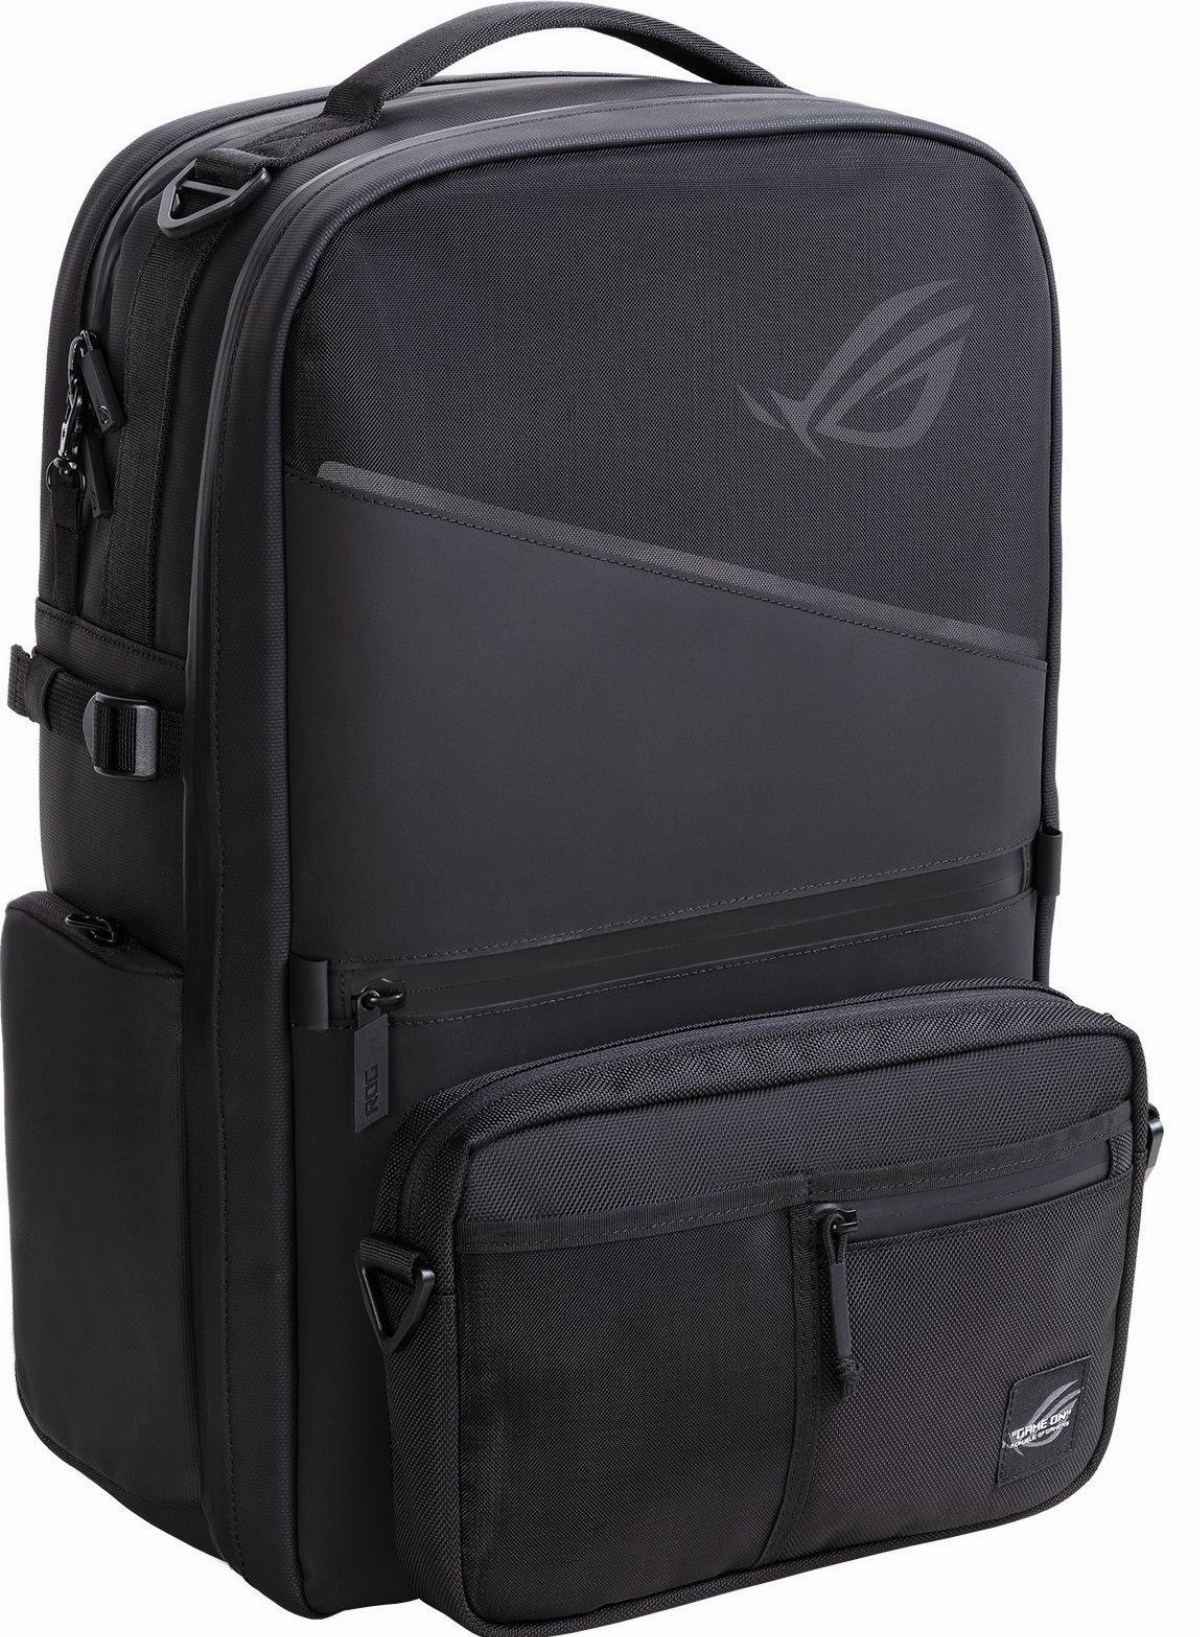 Раница за лаптоп ASUS ROG Ranger BP3703 Core Gaming Backpack